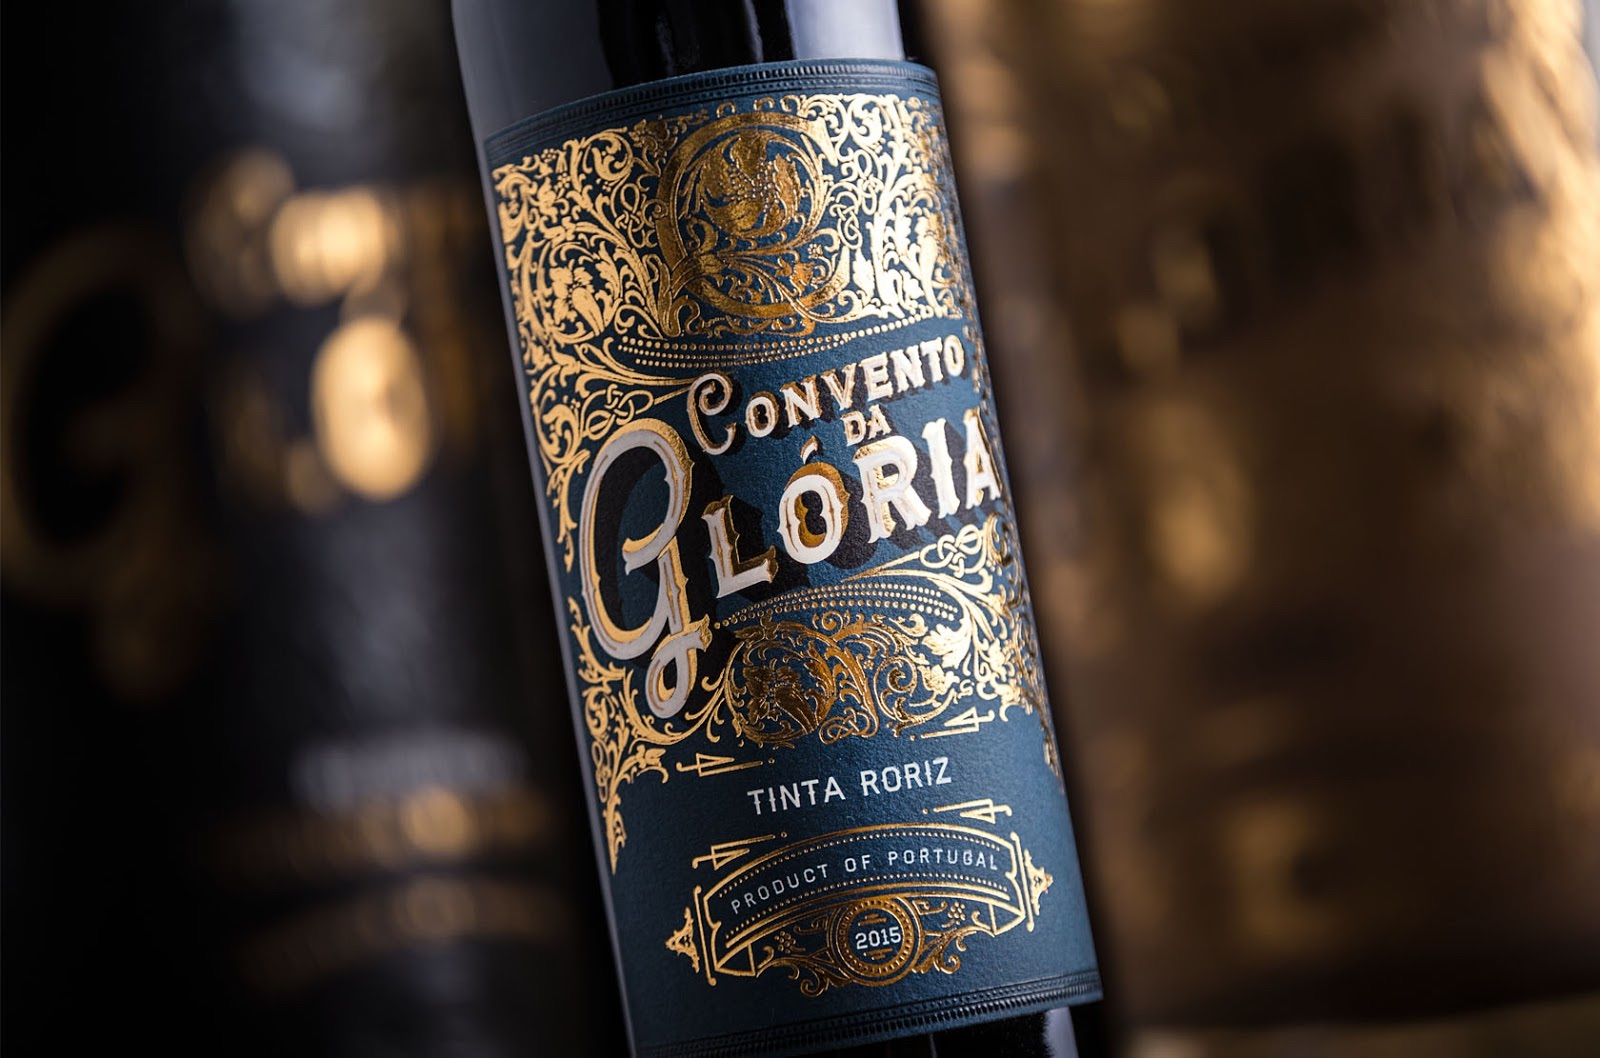 Convento da Gloria wine label